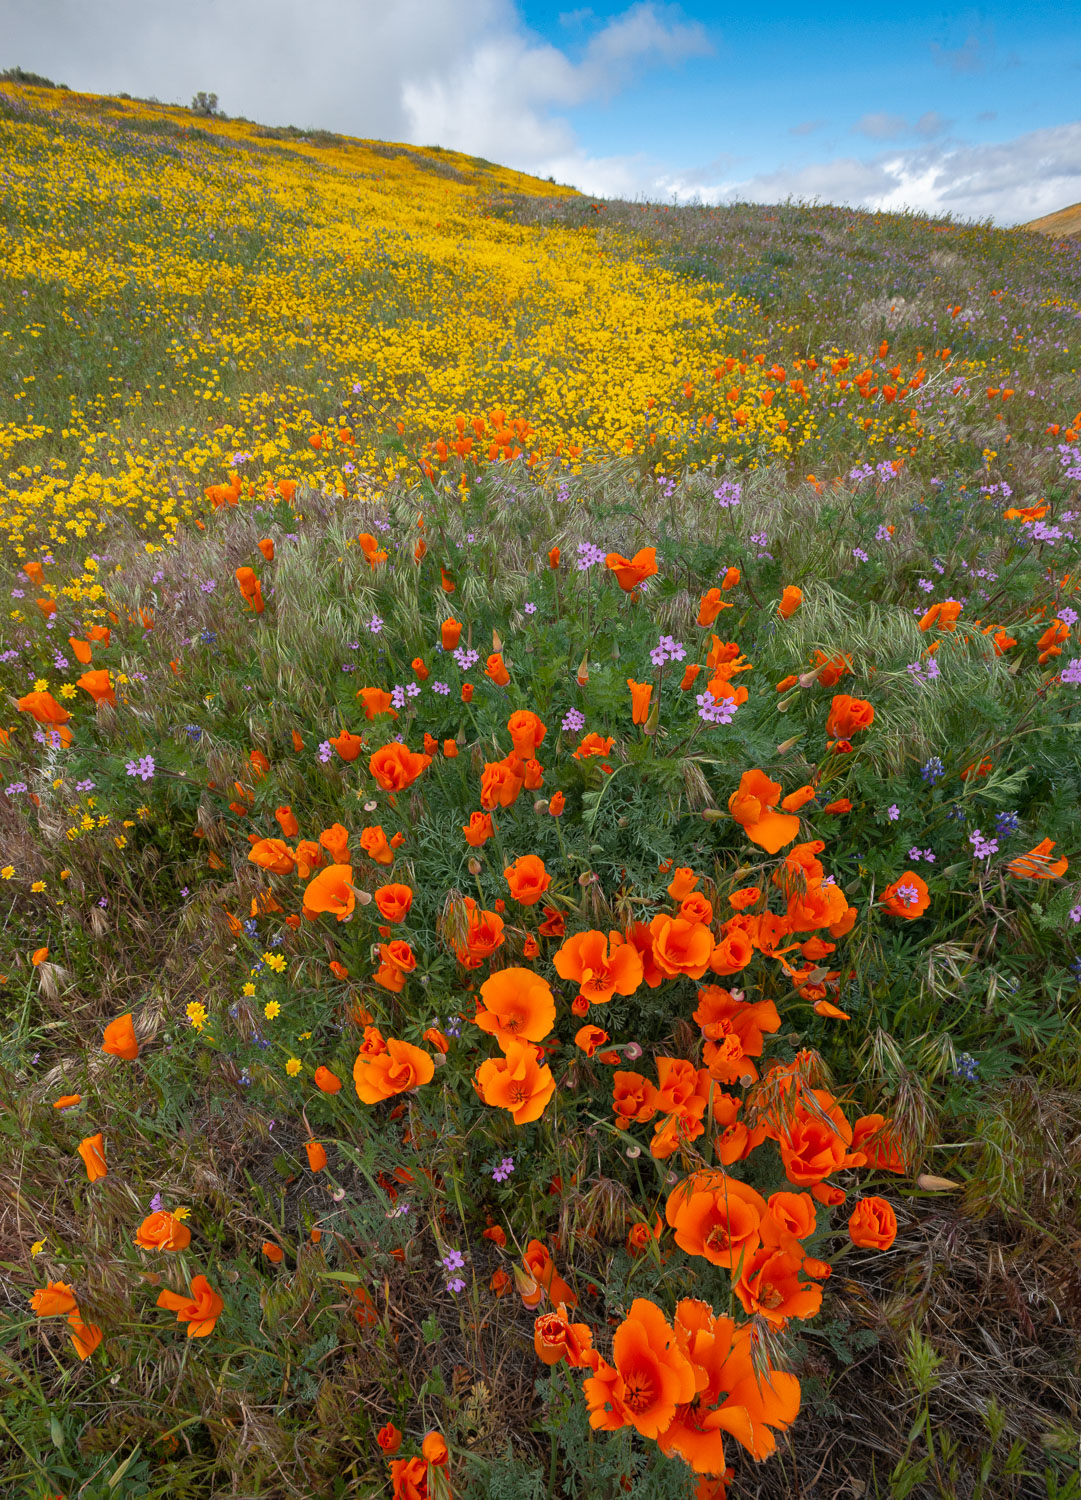 Orange Poppies, Goldfields, and Filaree are protected from Wind